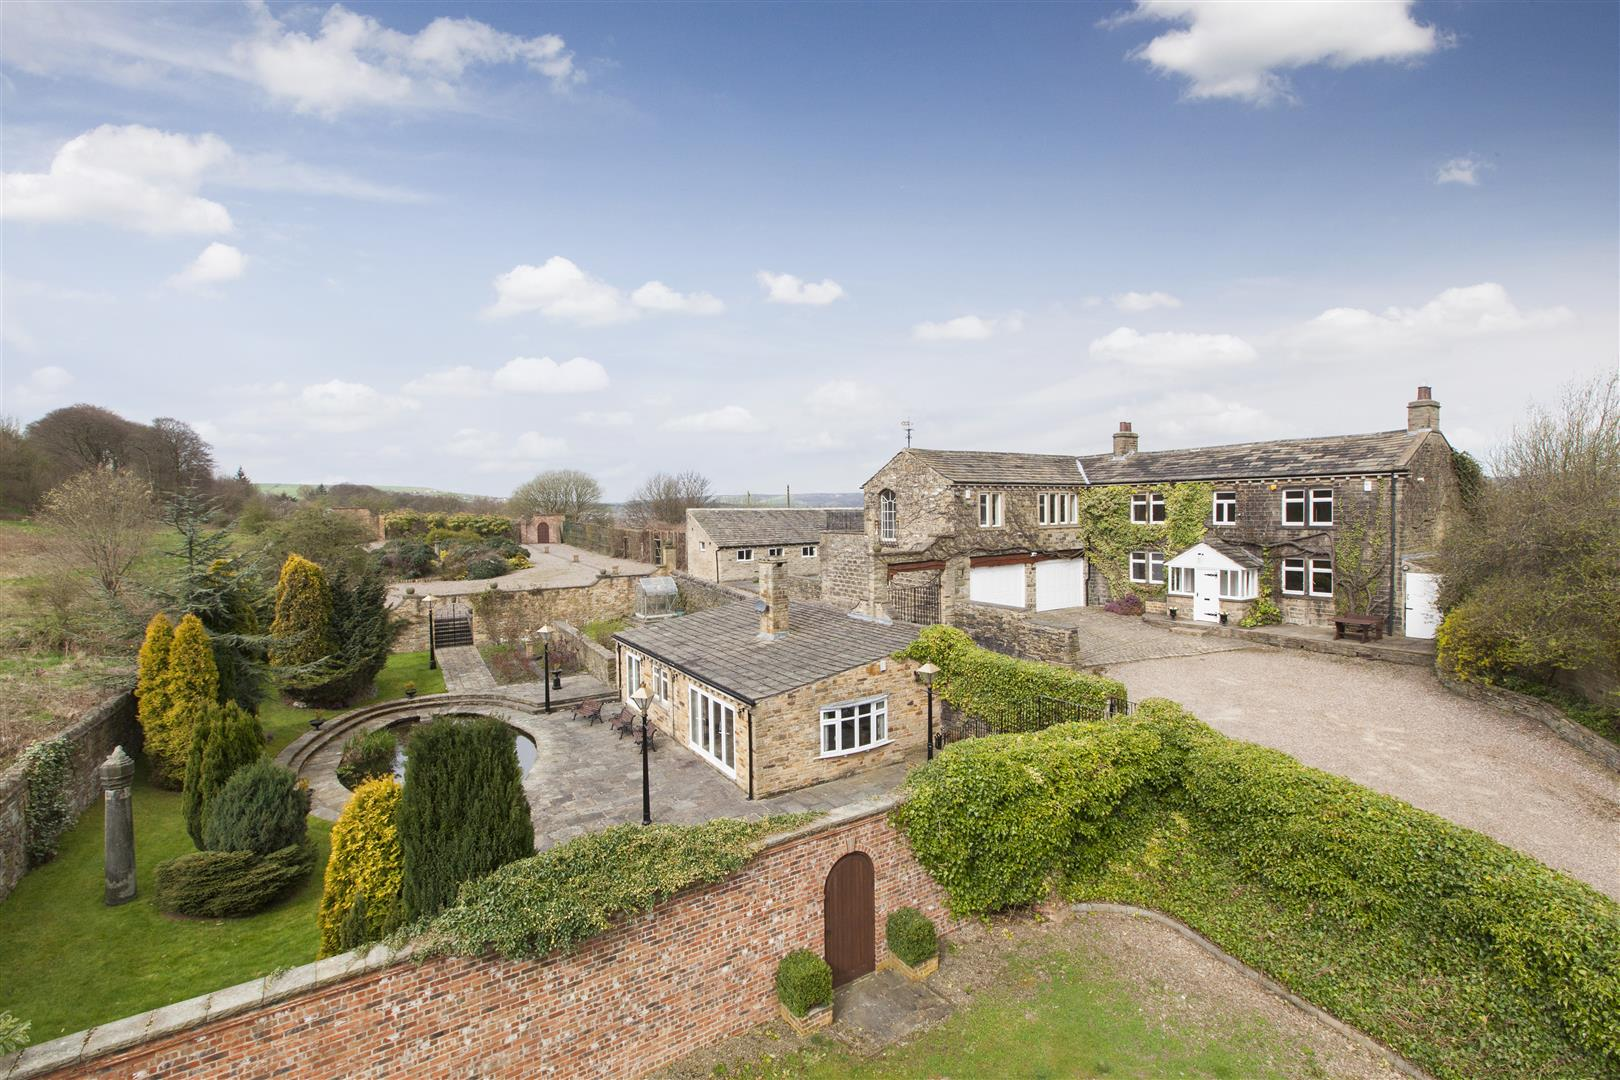 Hollin Hall Farm. Moorhead Lane, Shipley, BD18 4LH